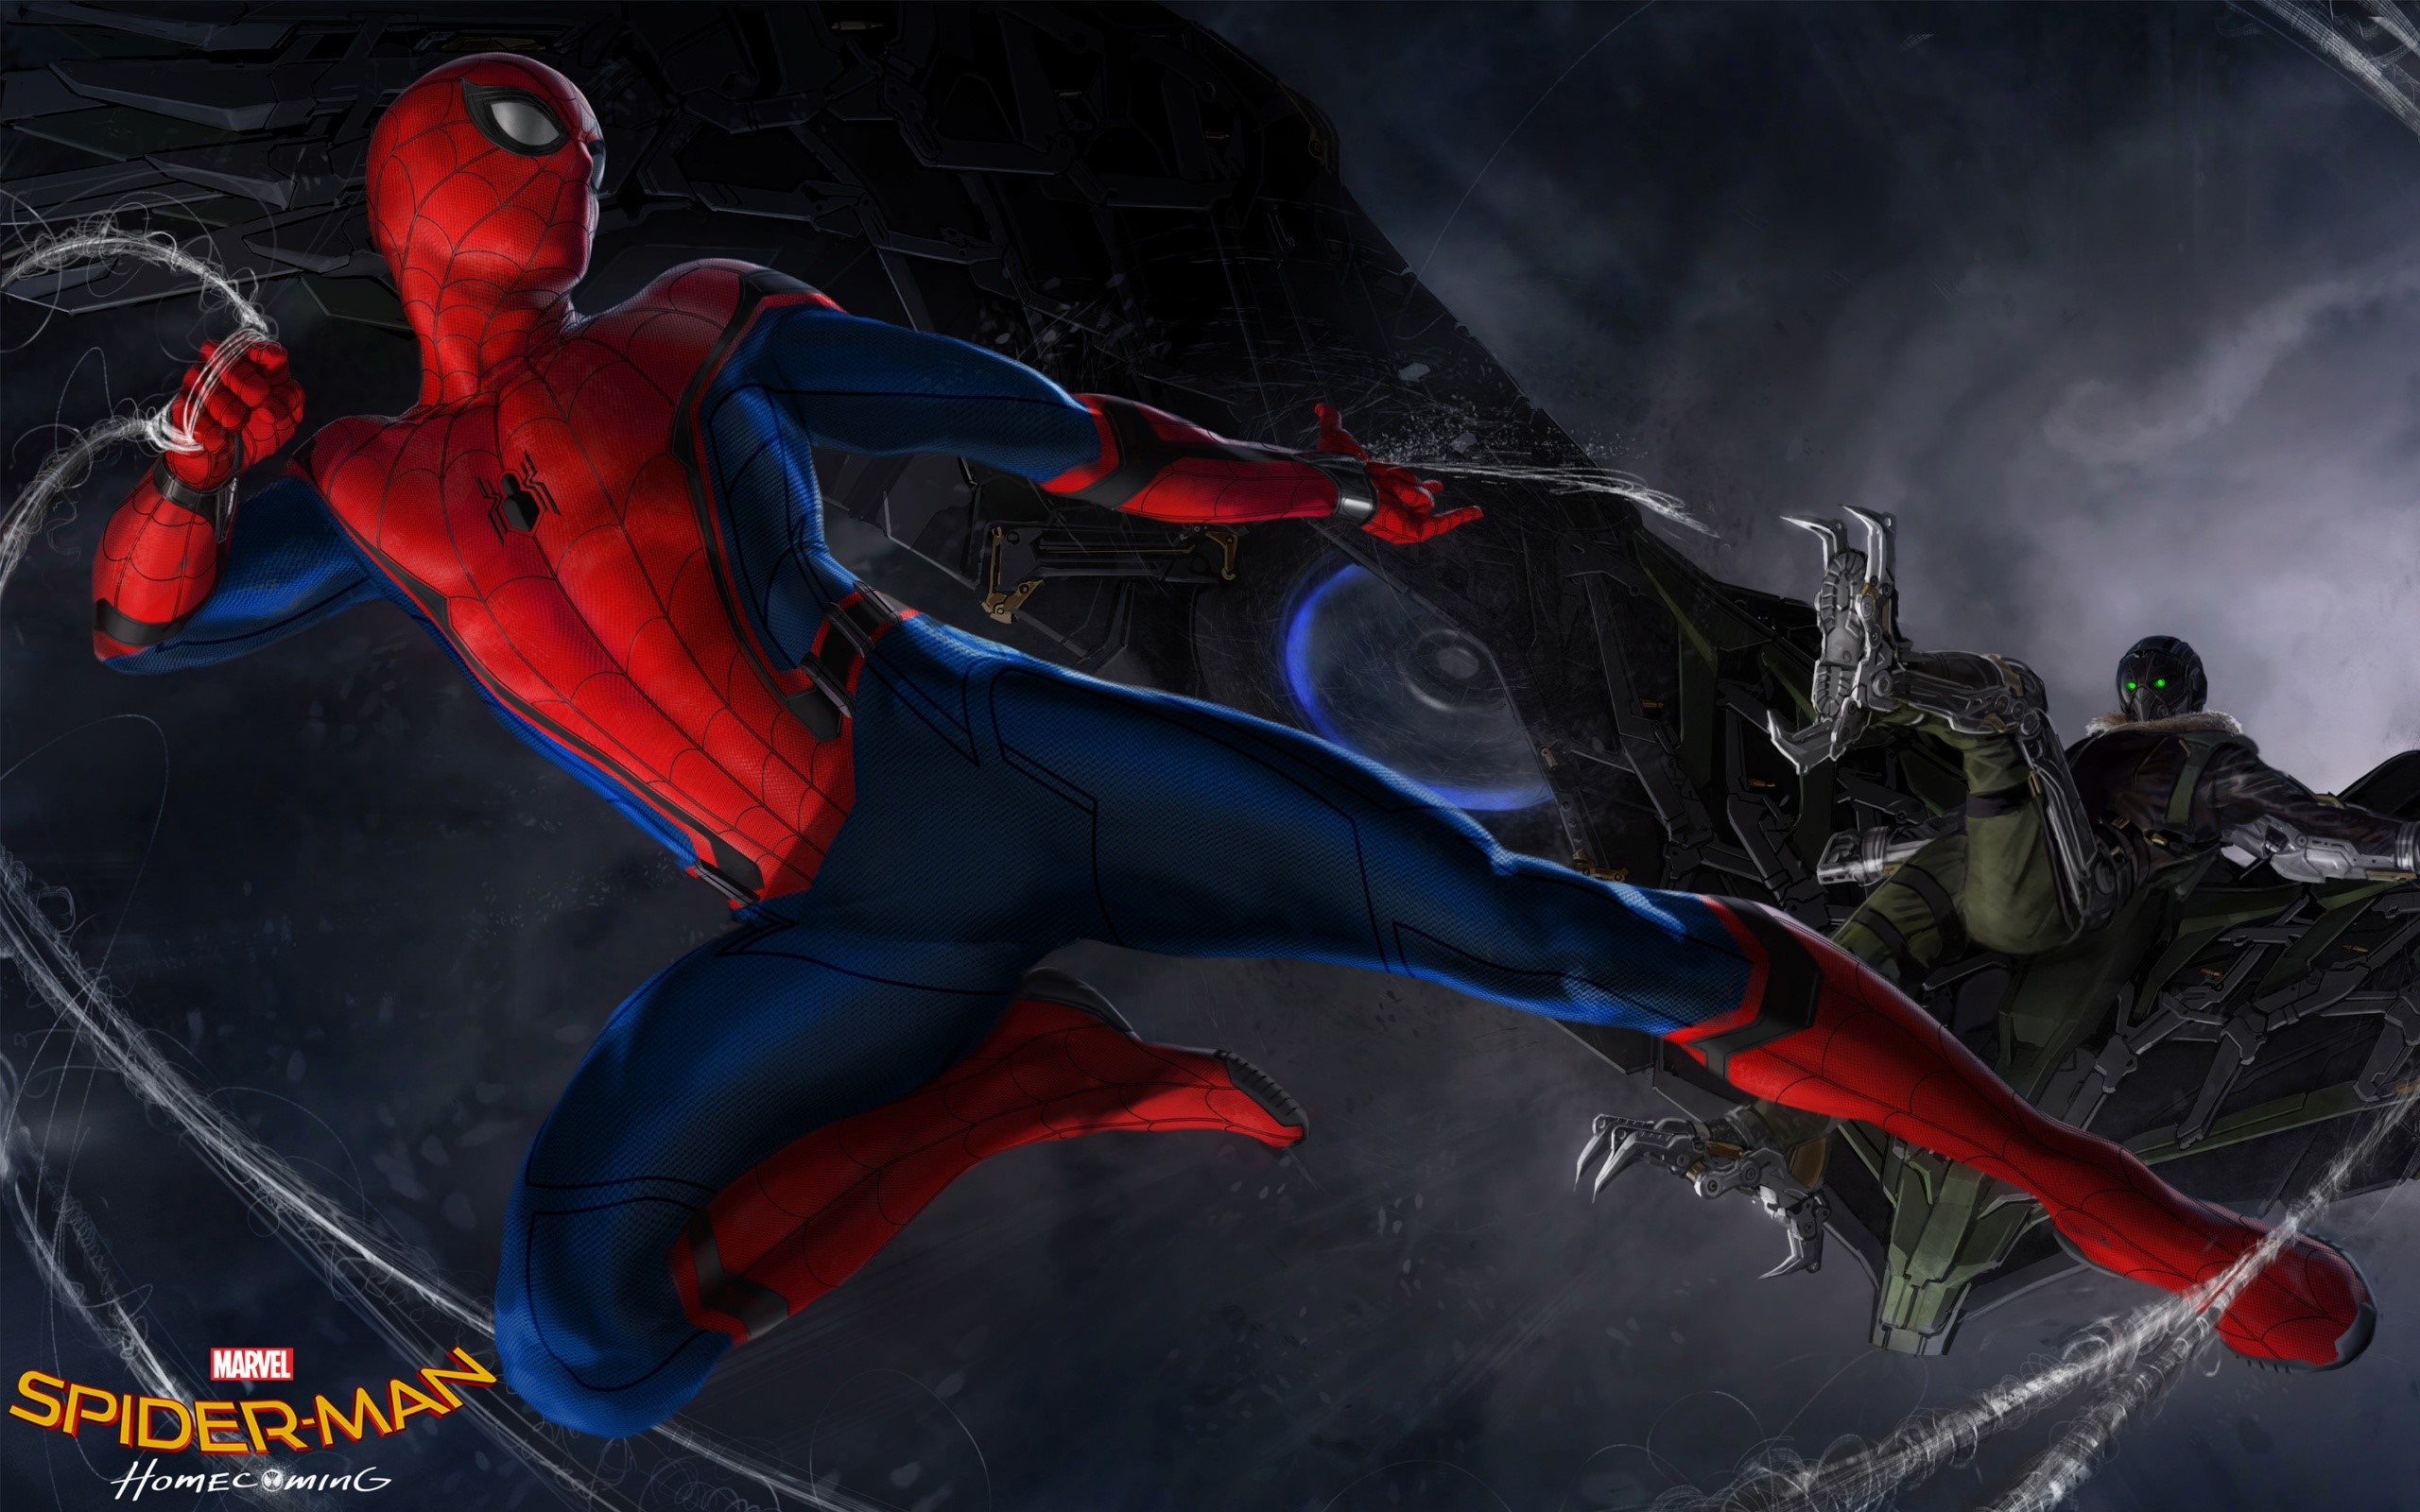 Wallpaper Spider man Homecoming